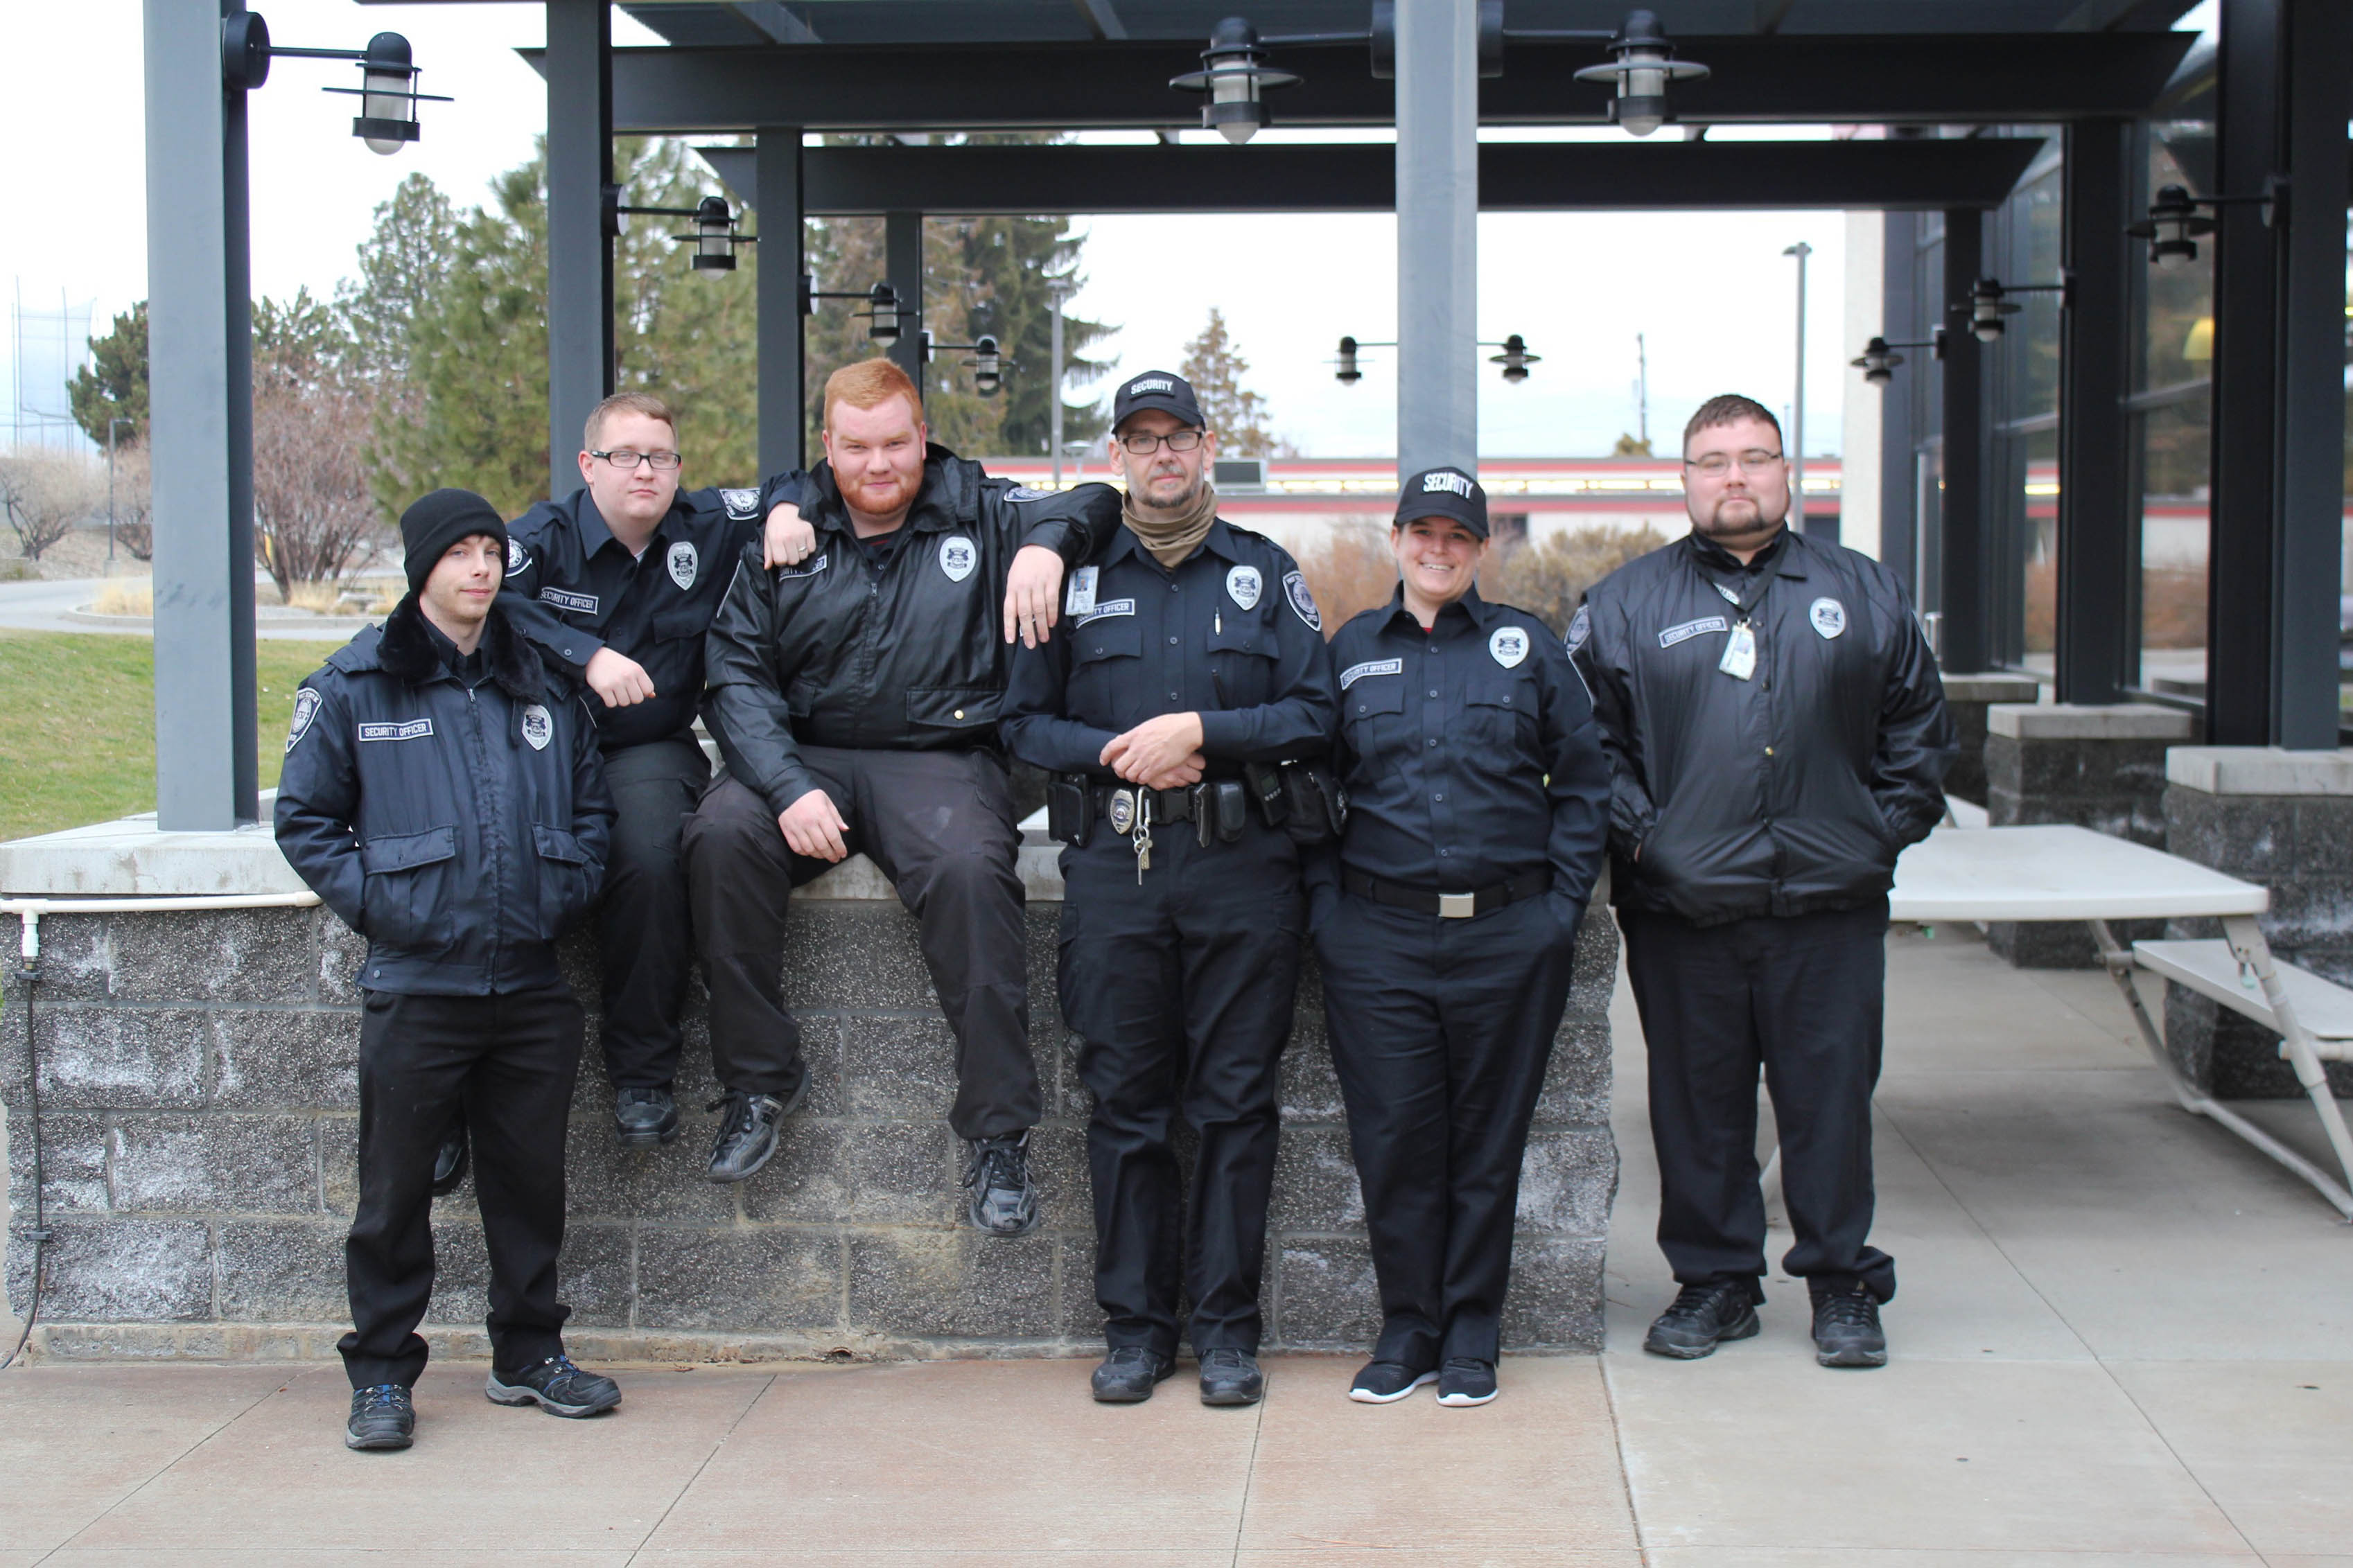 WVC Security Officers